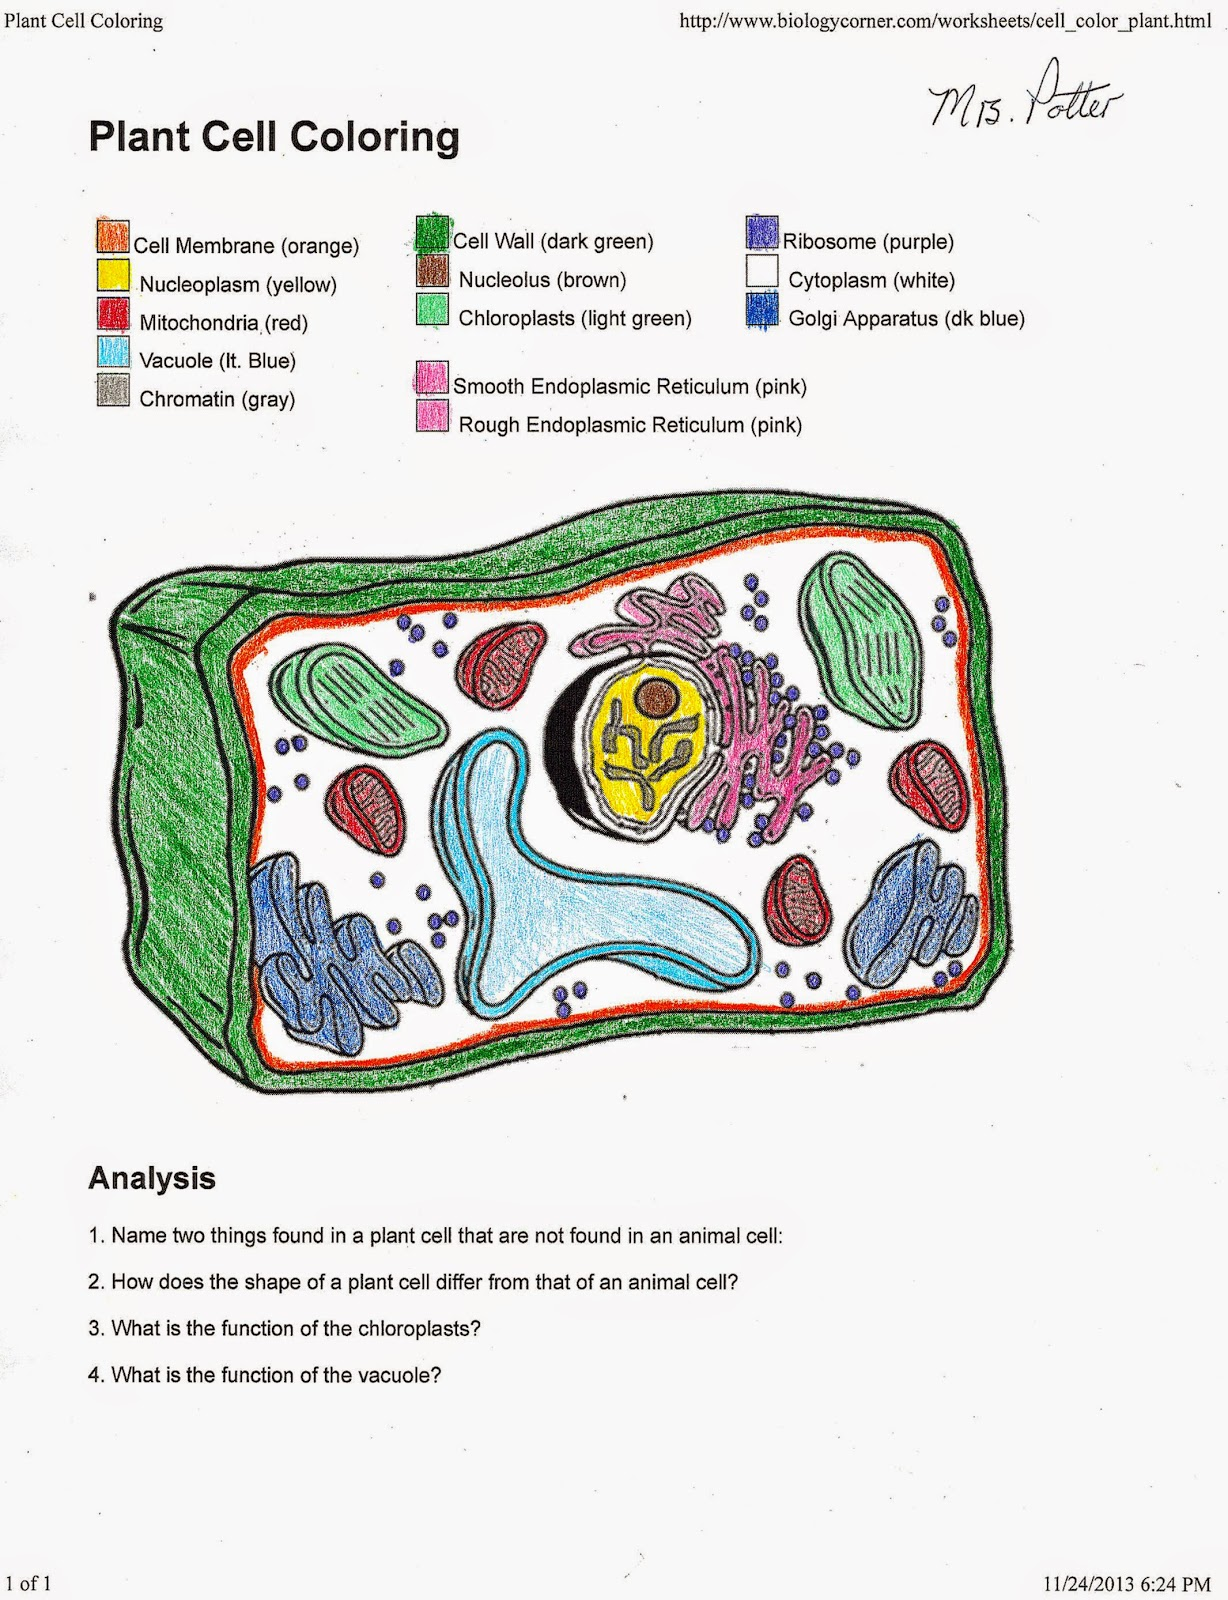 Plant Cell Coloring Worksheet Worksheets Tutsstar